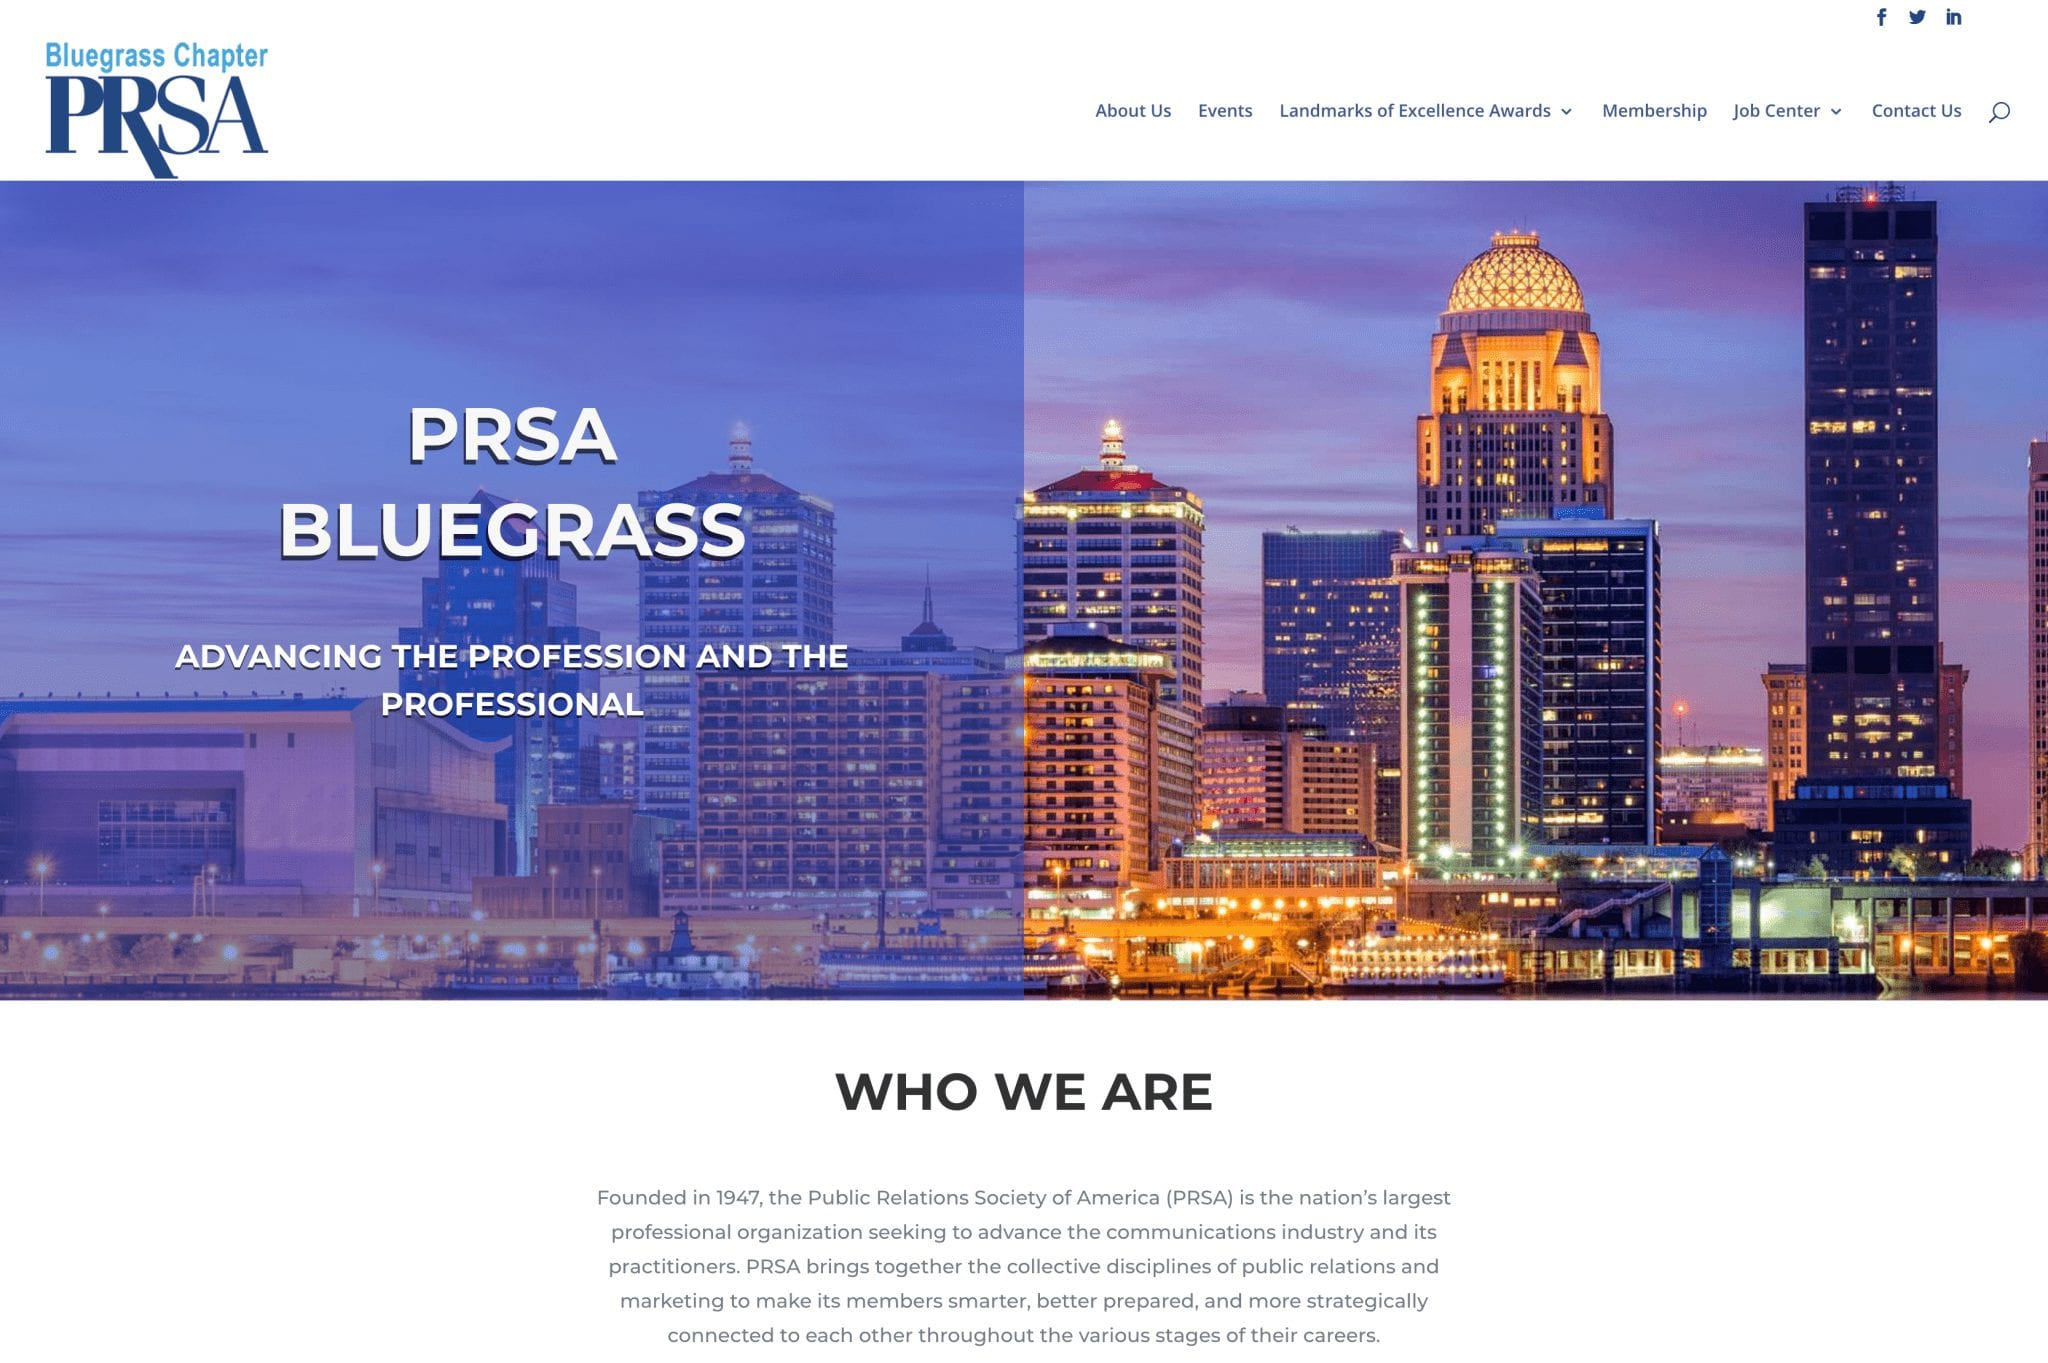 Bluegrass PRSA